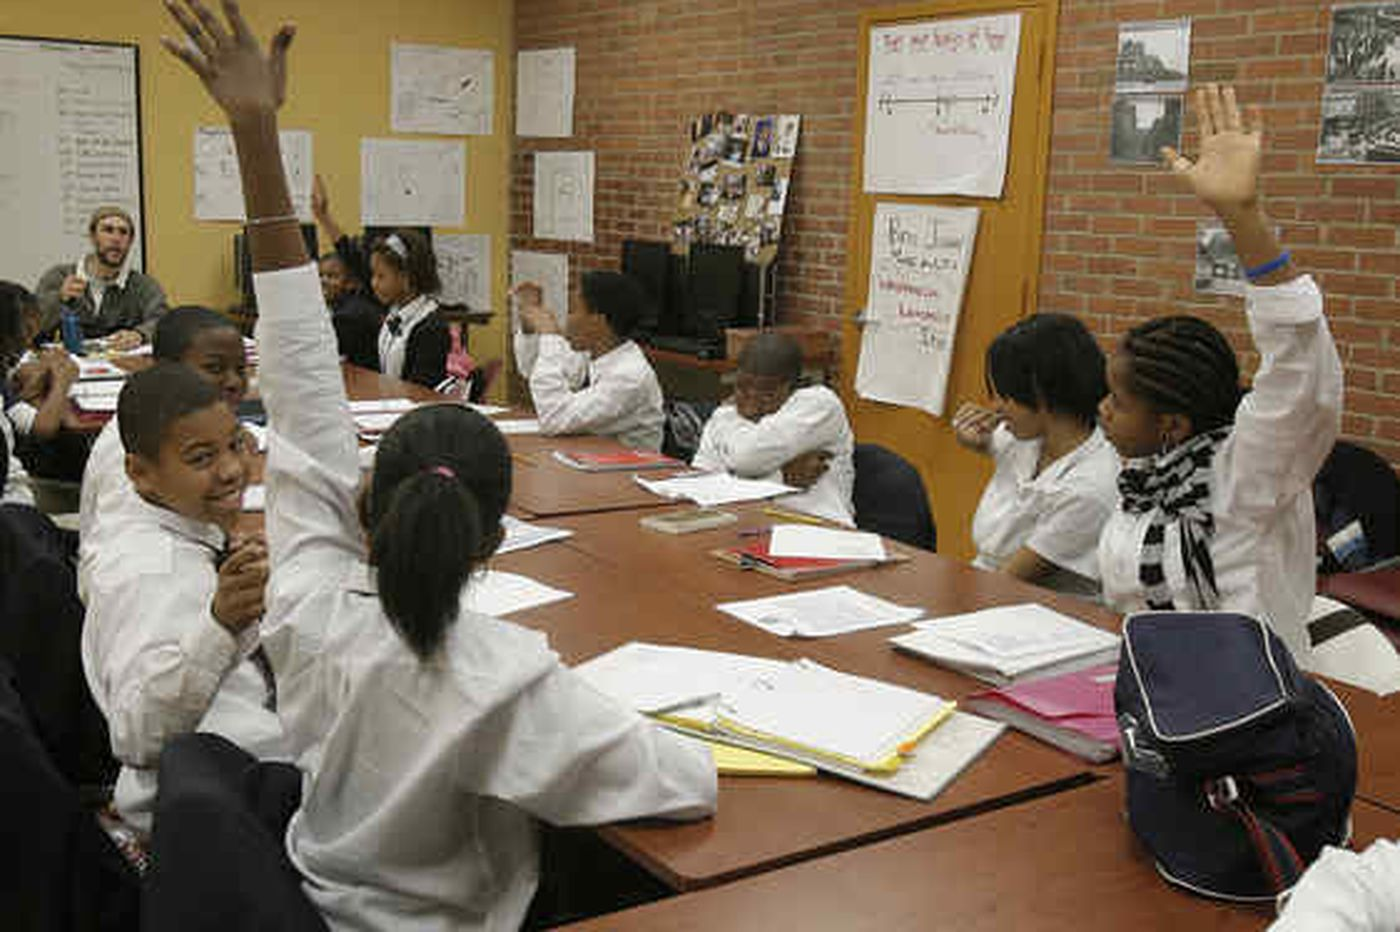 Philly charter school on the brink of closing after losing payments from School District